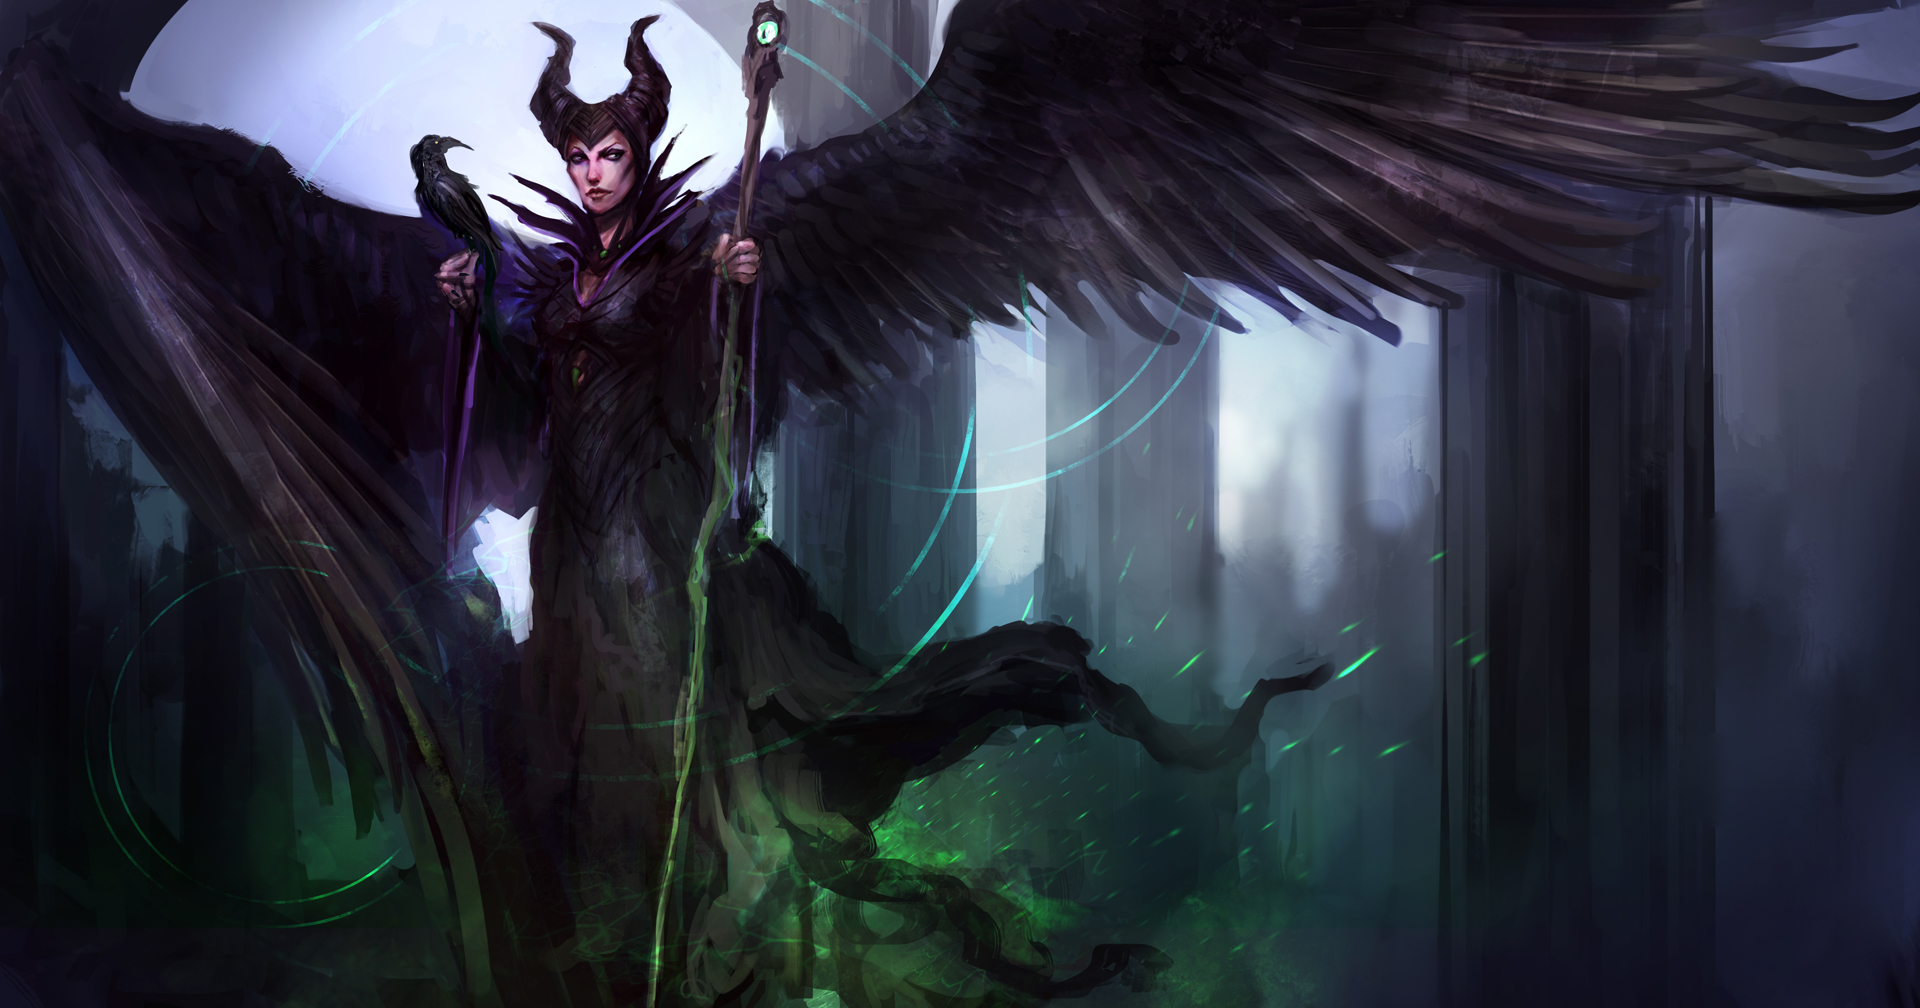 Maleficent Movie 2014 Hd Ipad Iphone Wallpapers: Desktop Wallpaper Maleficent, 2014 Movie, Witch, Raven